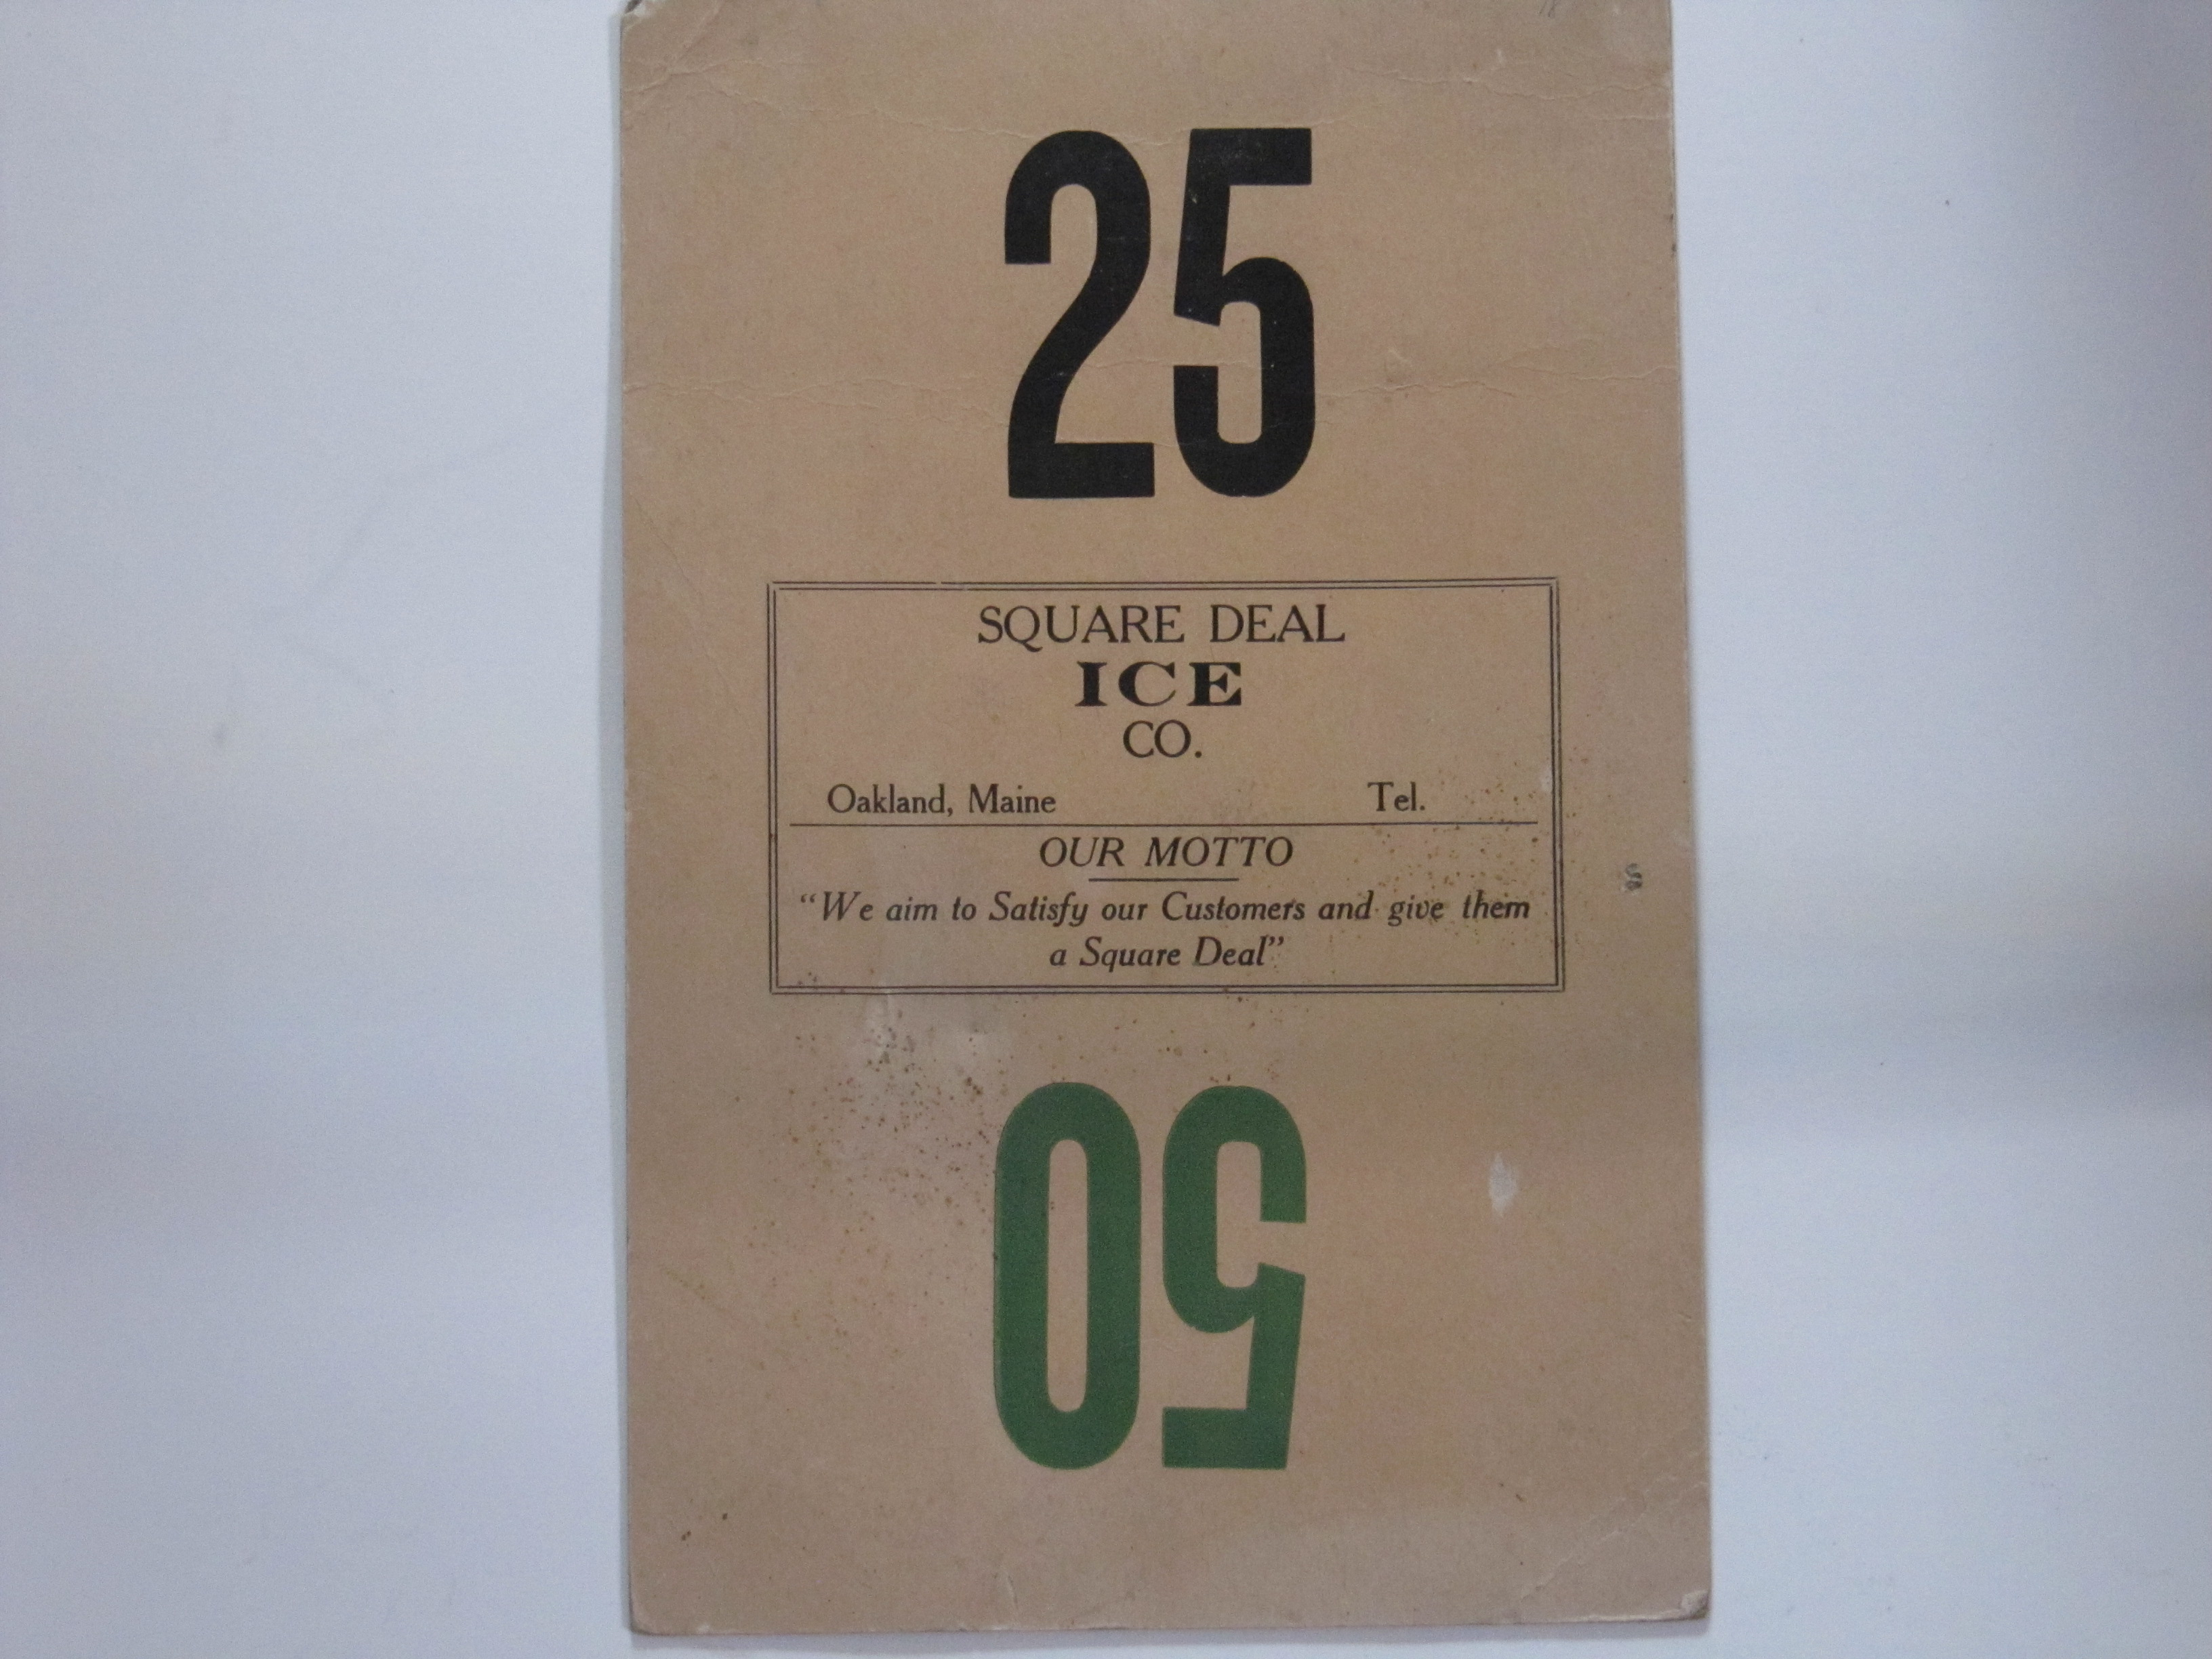 Square Deal Ice Co.